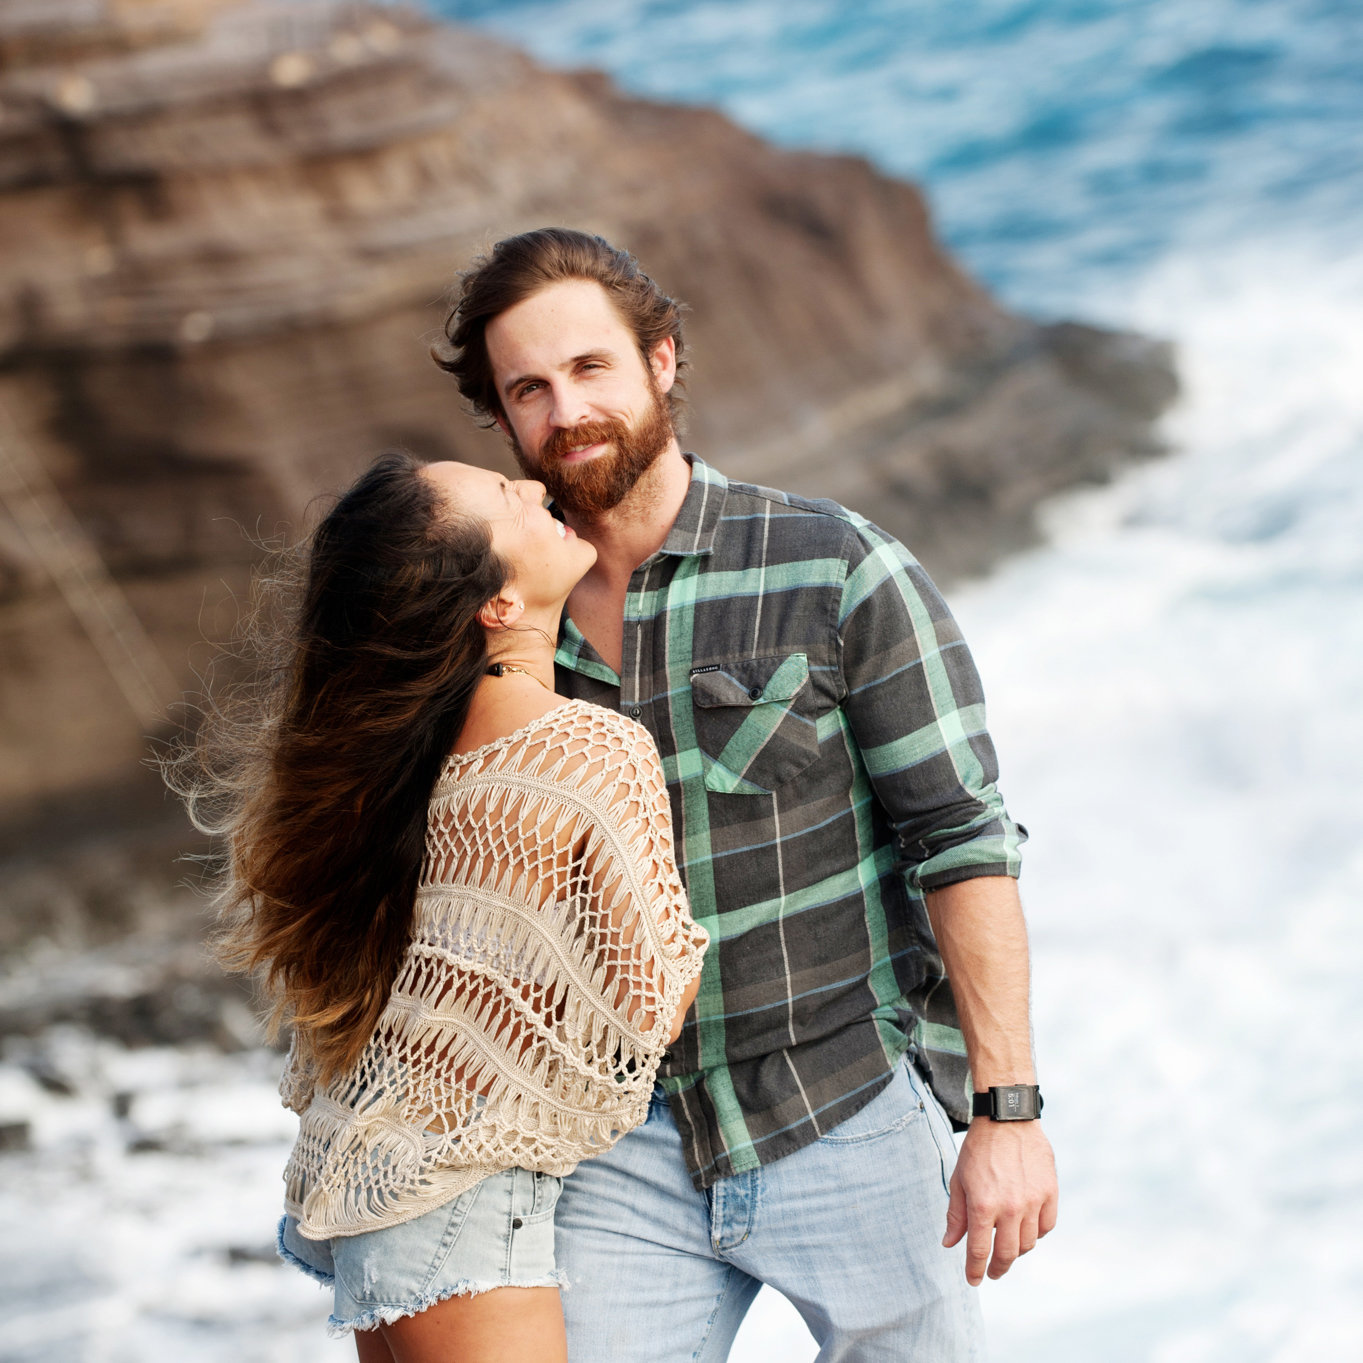 a handsome man looks at the camera as a woman reaches up to give him a kiss with spitting caves hawaii in the background